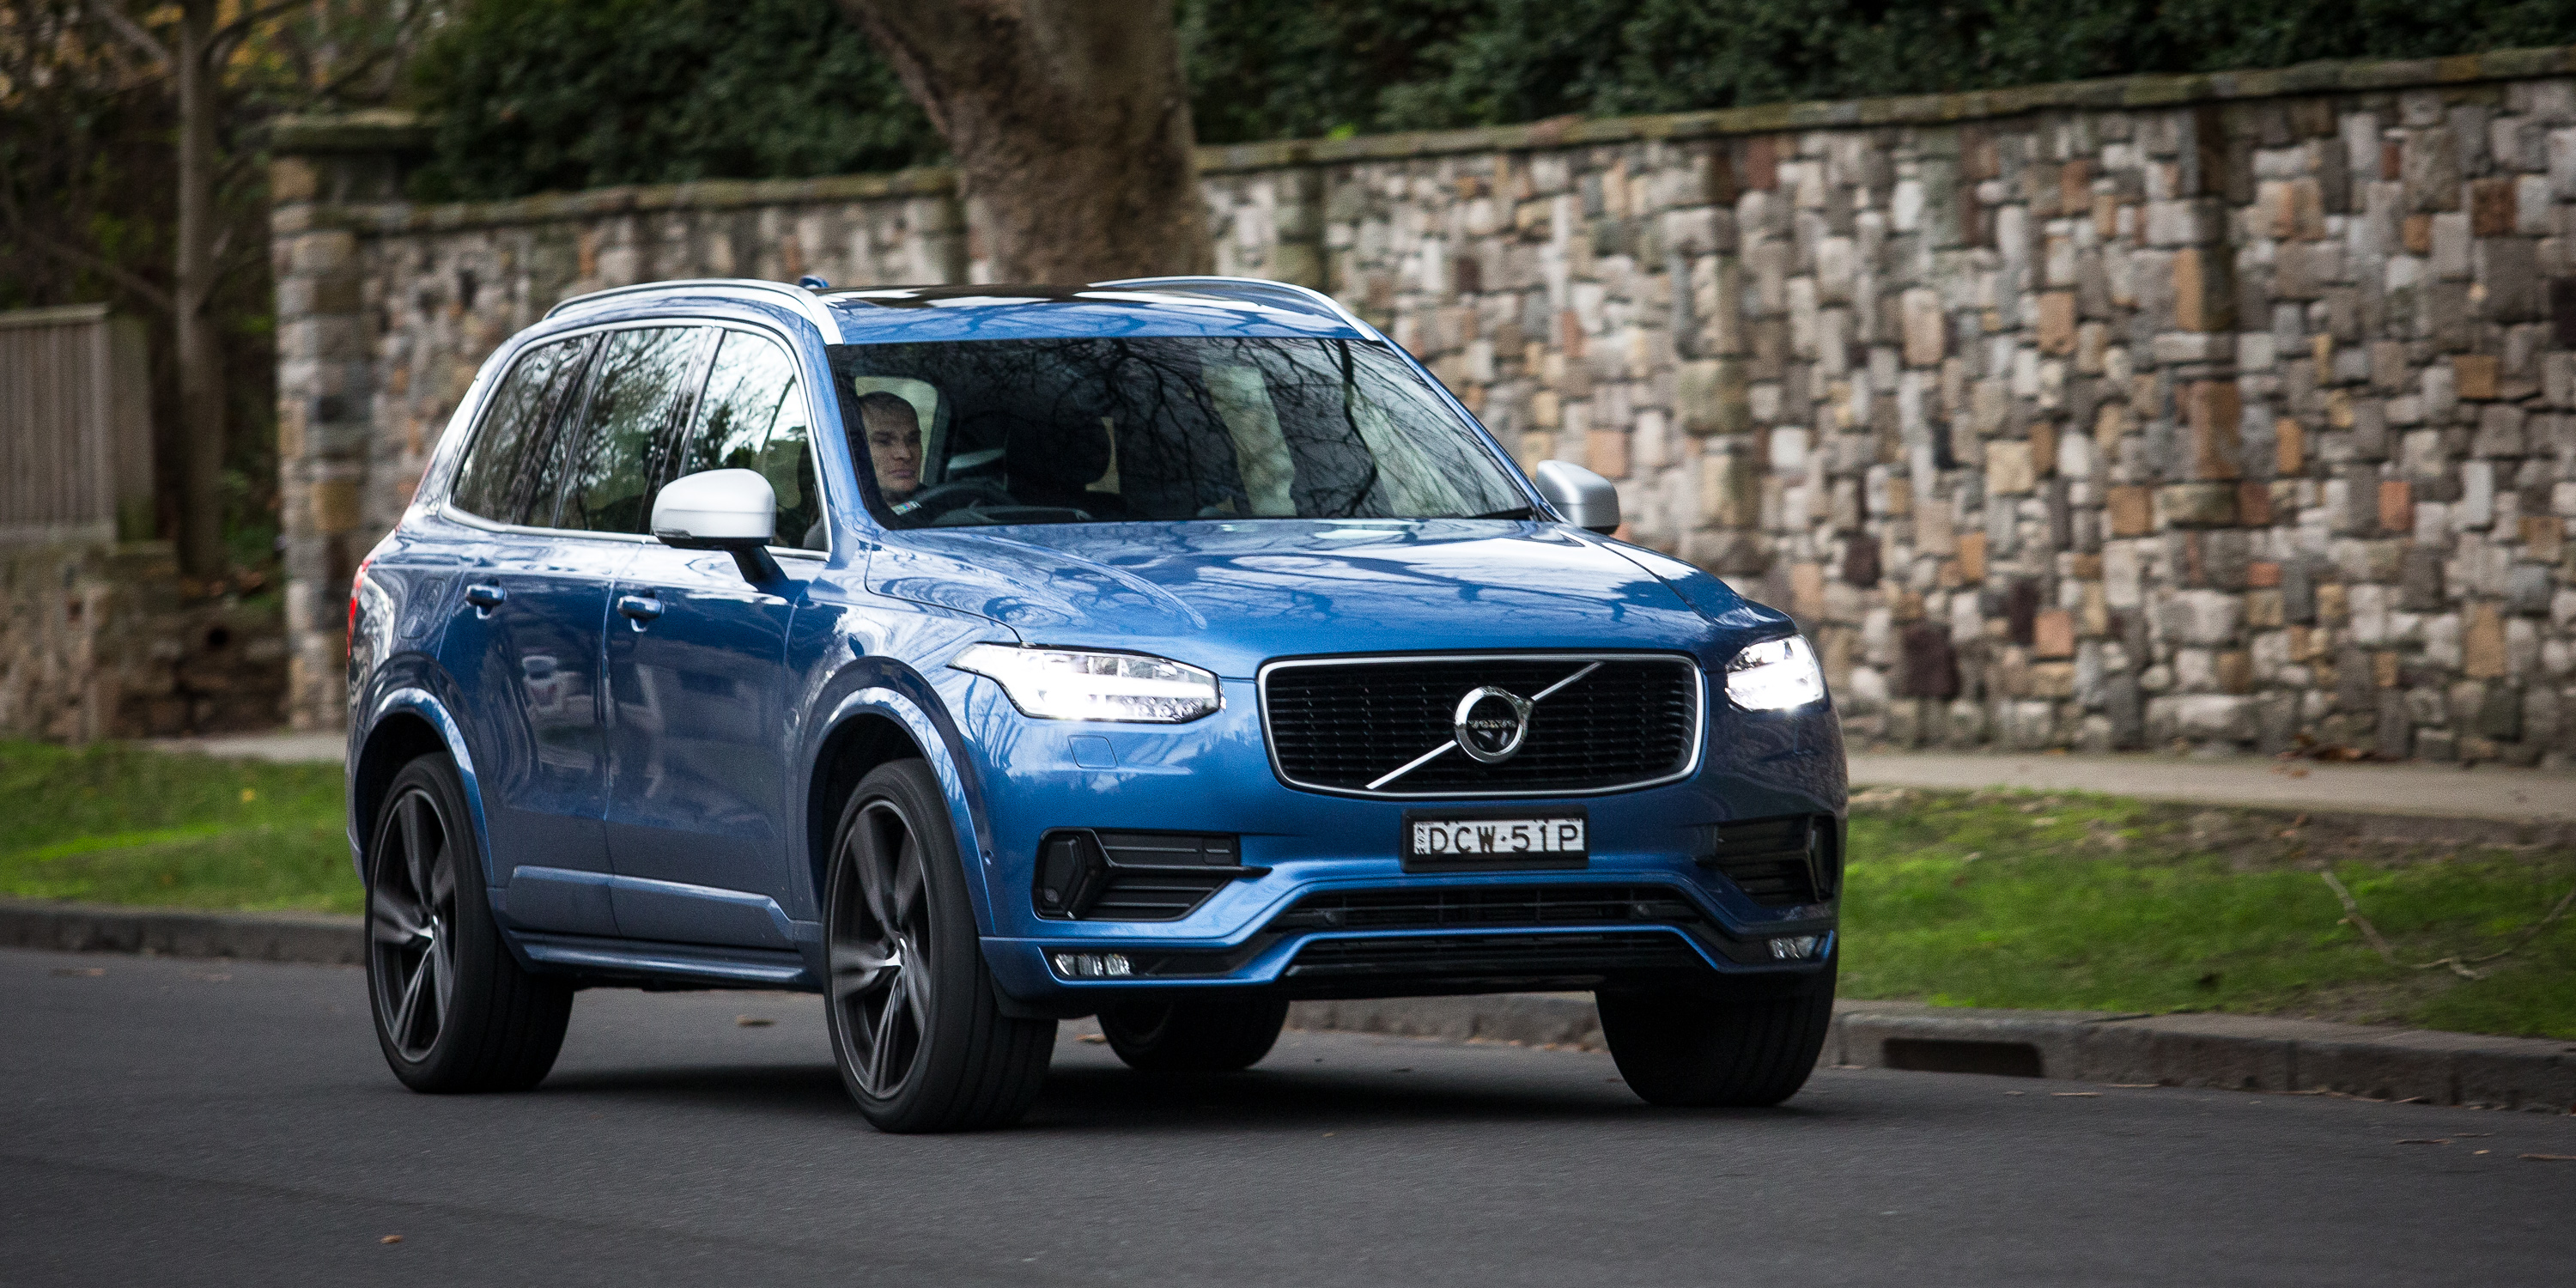 2016 volvo xc90 t6 r design review long term report two. Black Bedroom Furniture Sets. Home Design Ideas